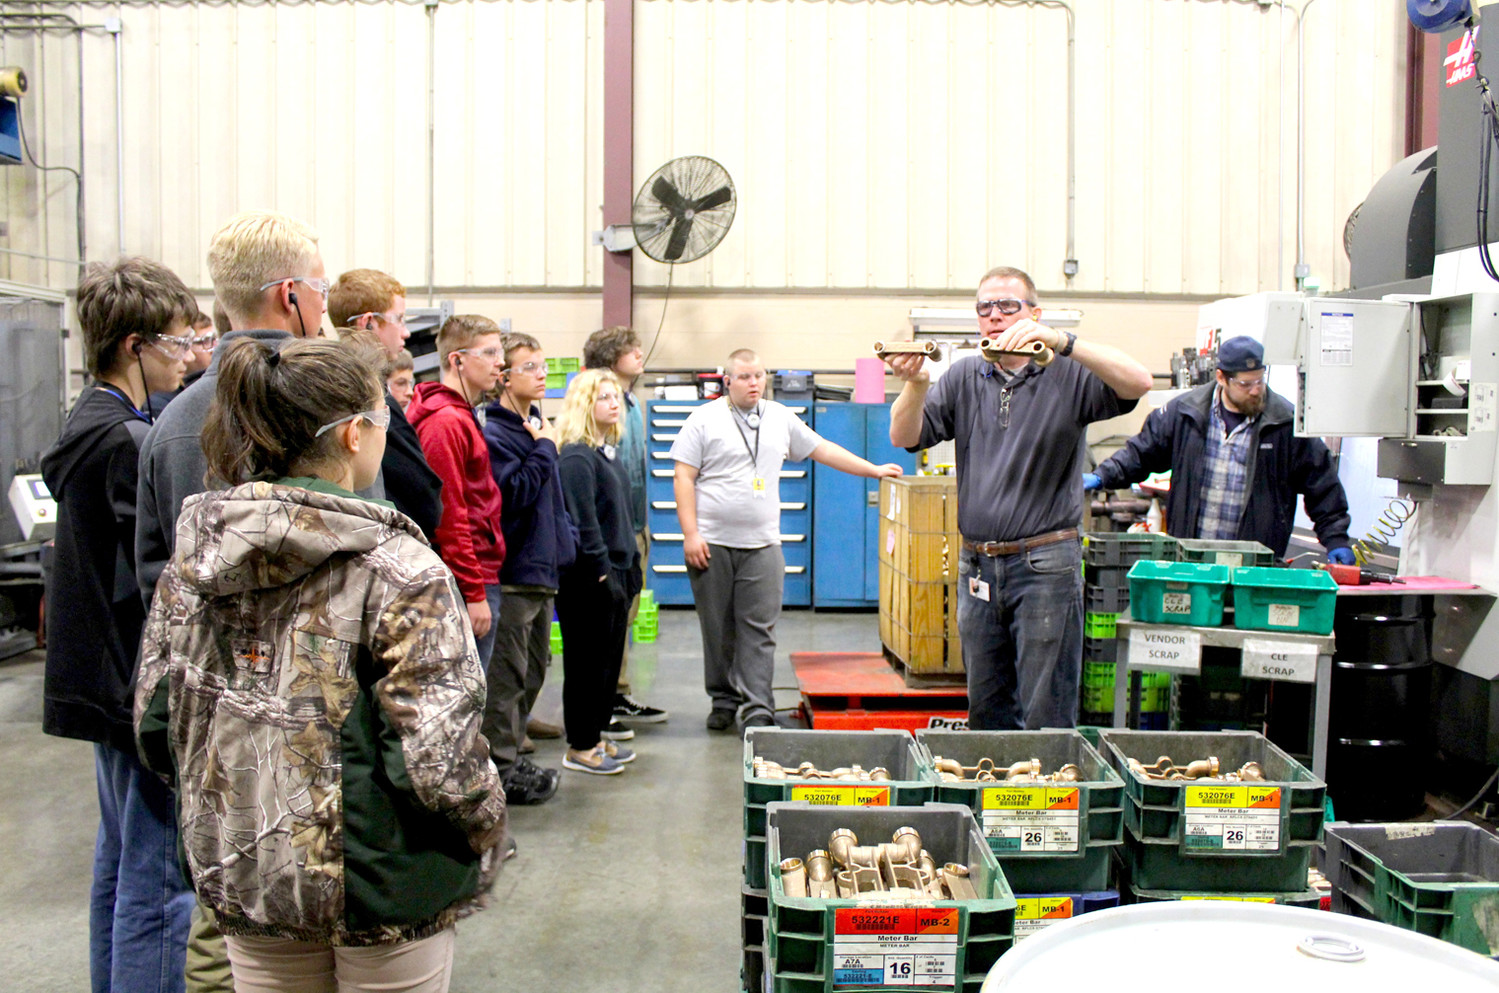 EXPLAINING how products are made and used, Rodney Hodges leads a group of Bradley Central High School students on a tour of Mueller Co. during Manufacturing Week.